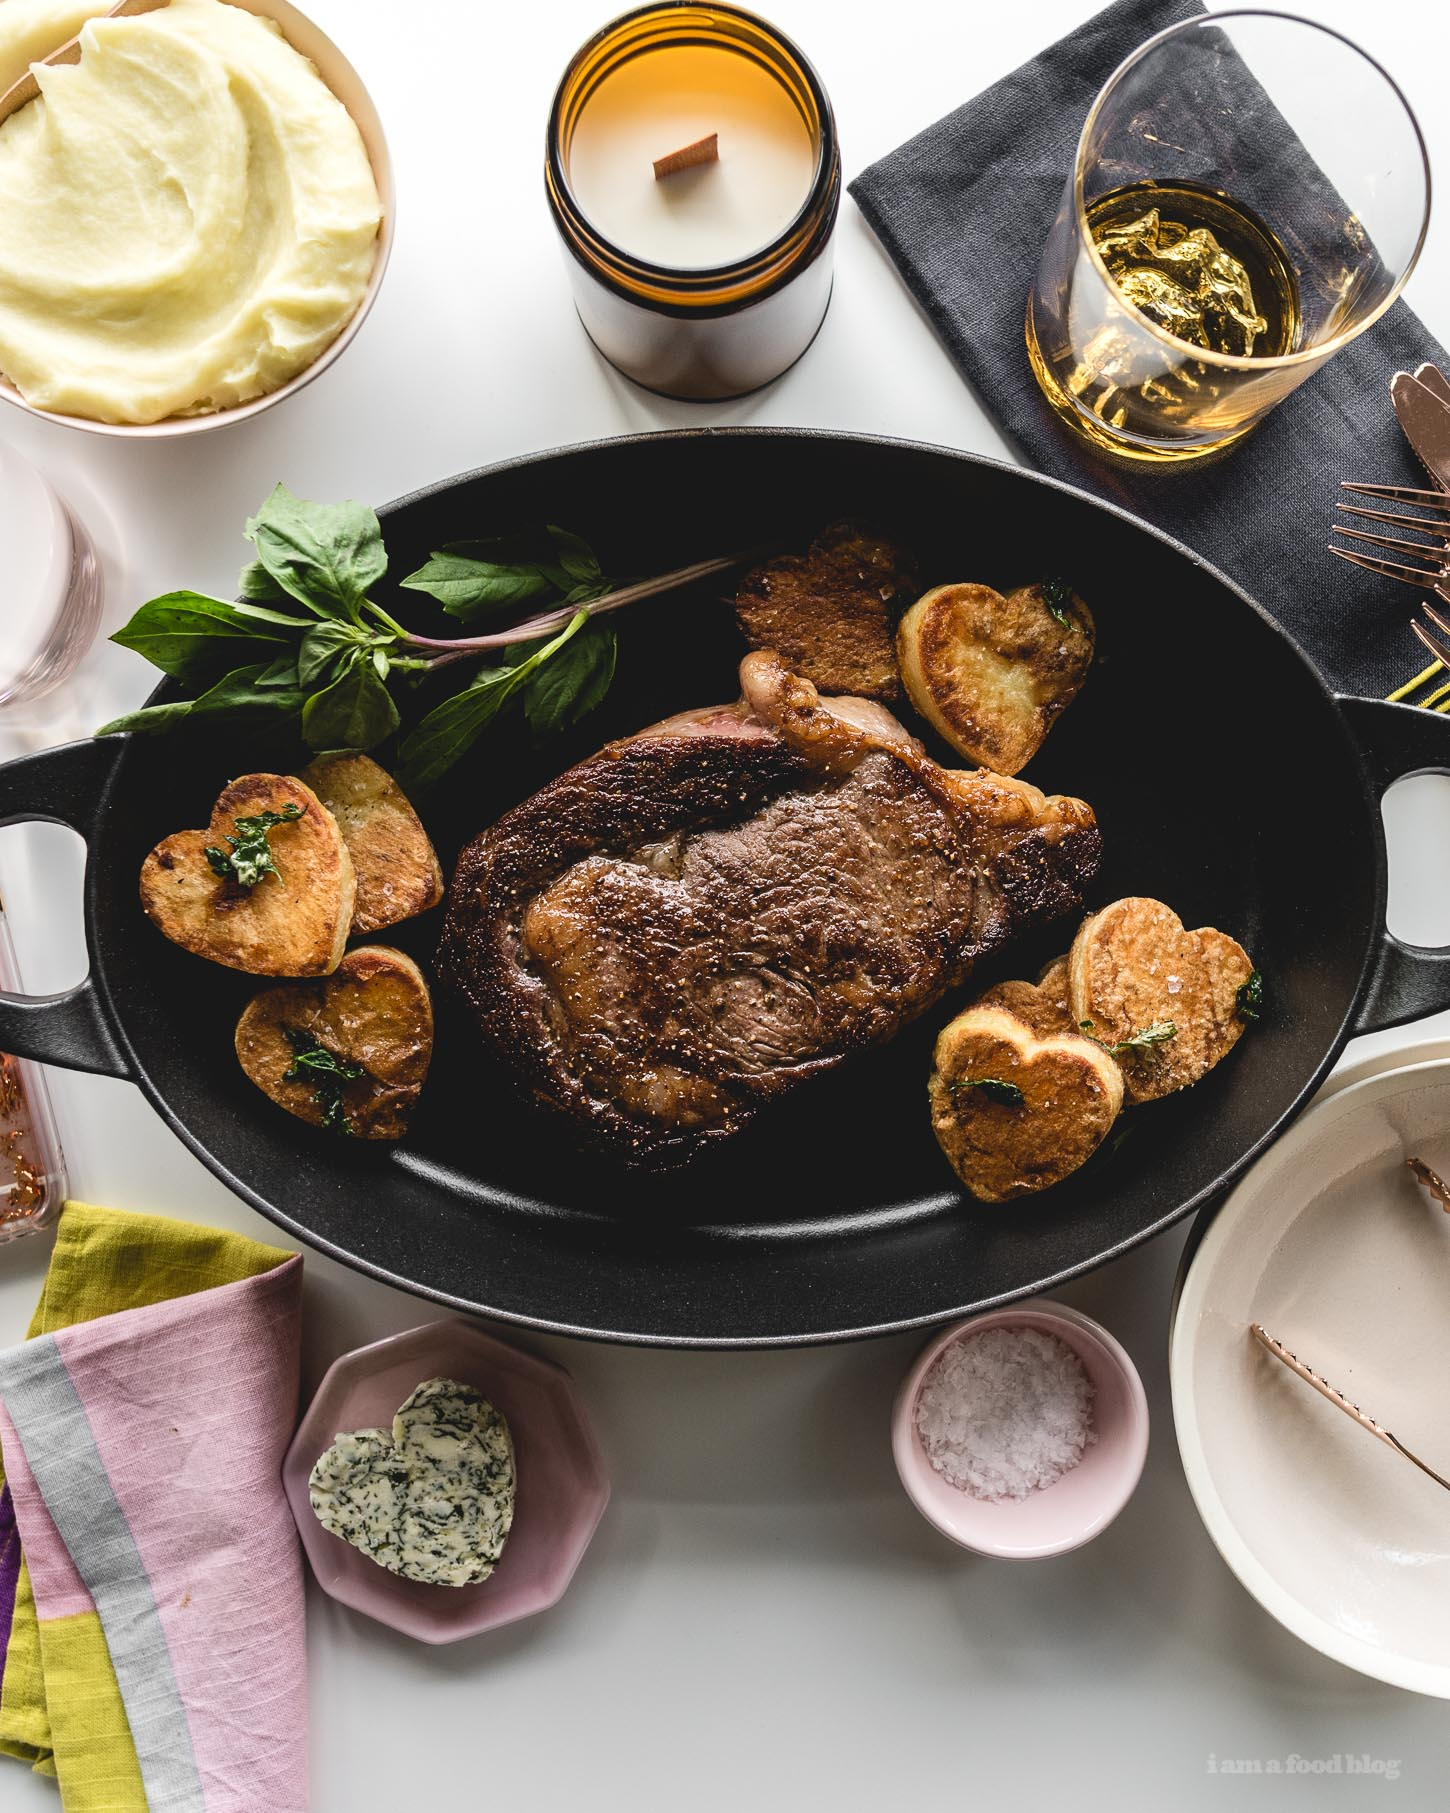 Simple Sous Vide Rib Eye Steak Recipe with Basil Garlic Compound Butter   www.iamafoodblog.com